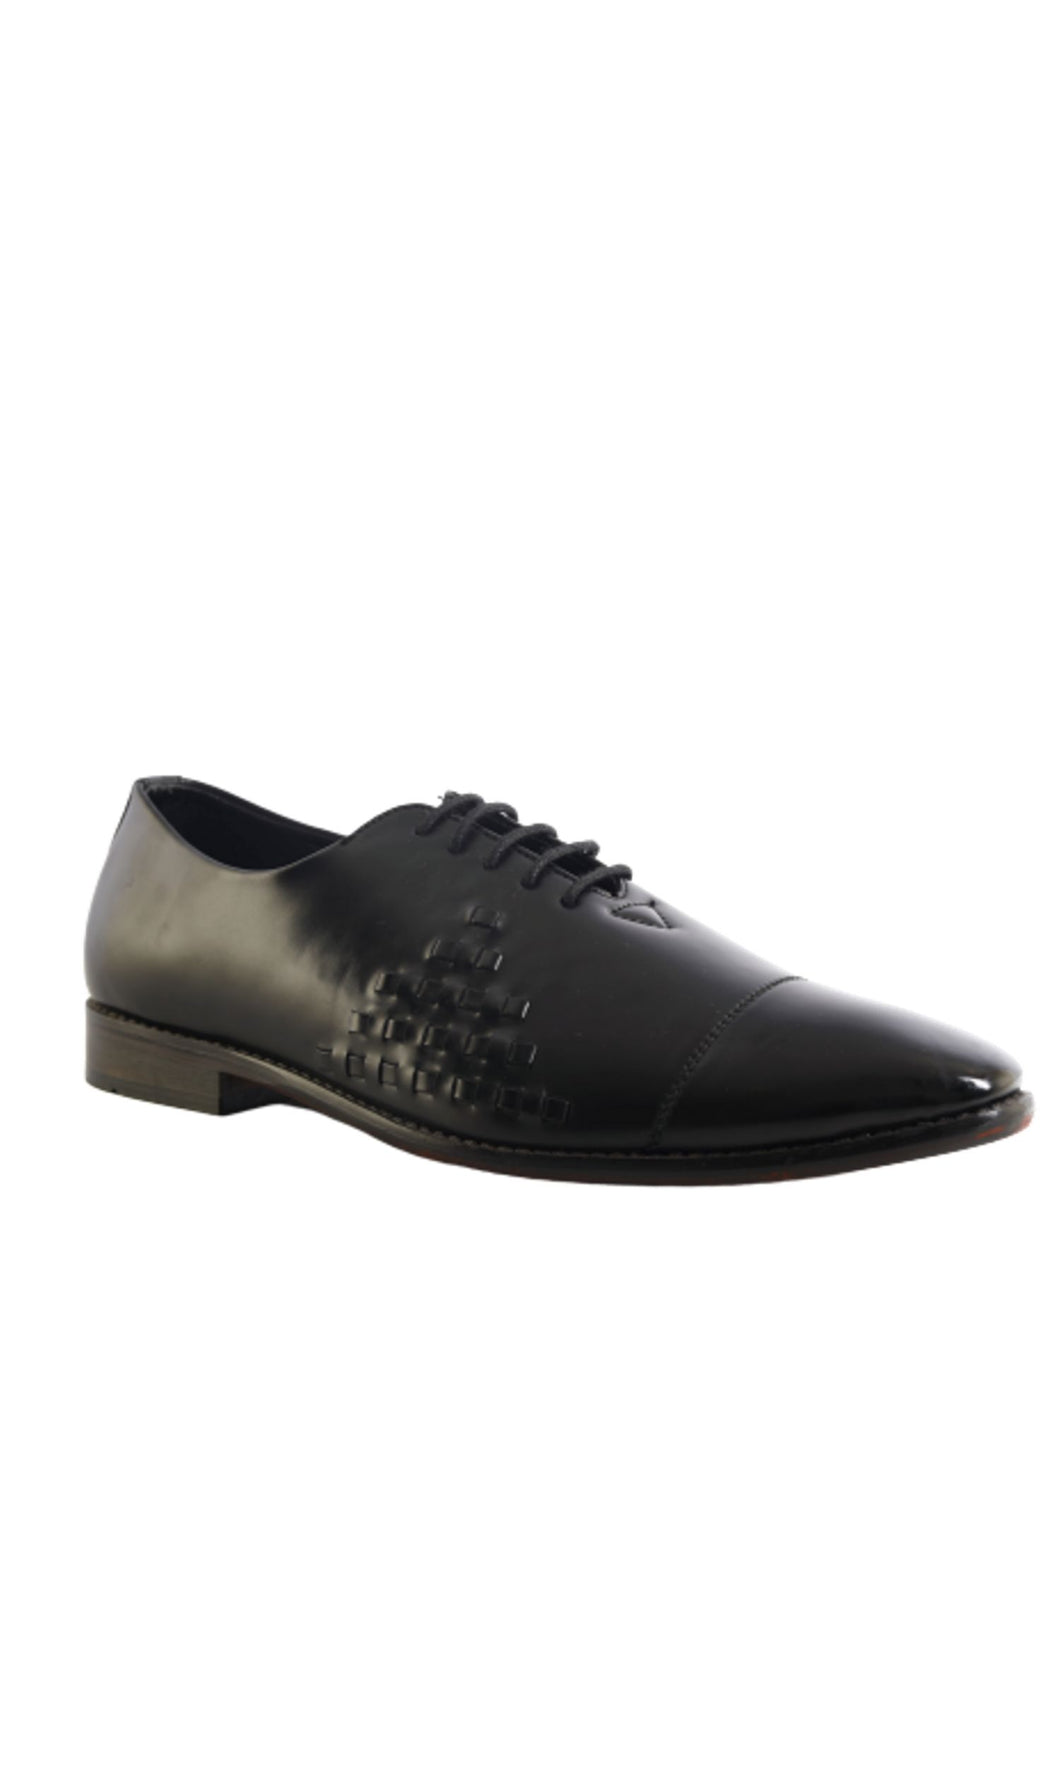 Men Black Formal Brogues